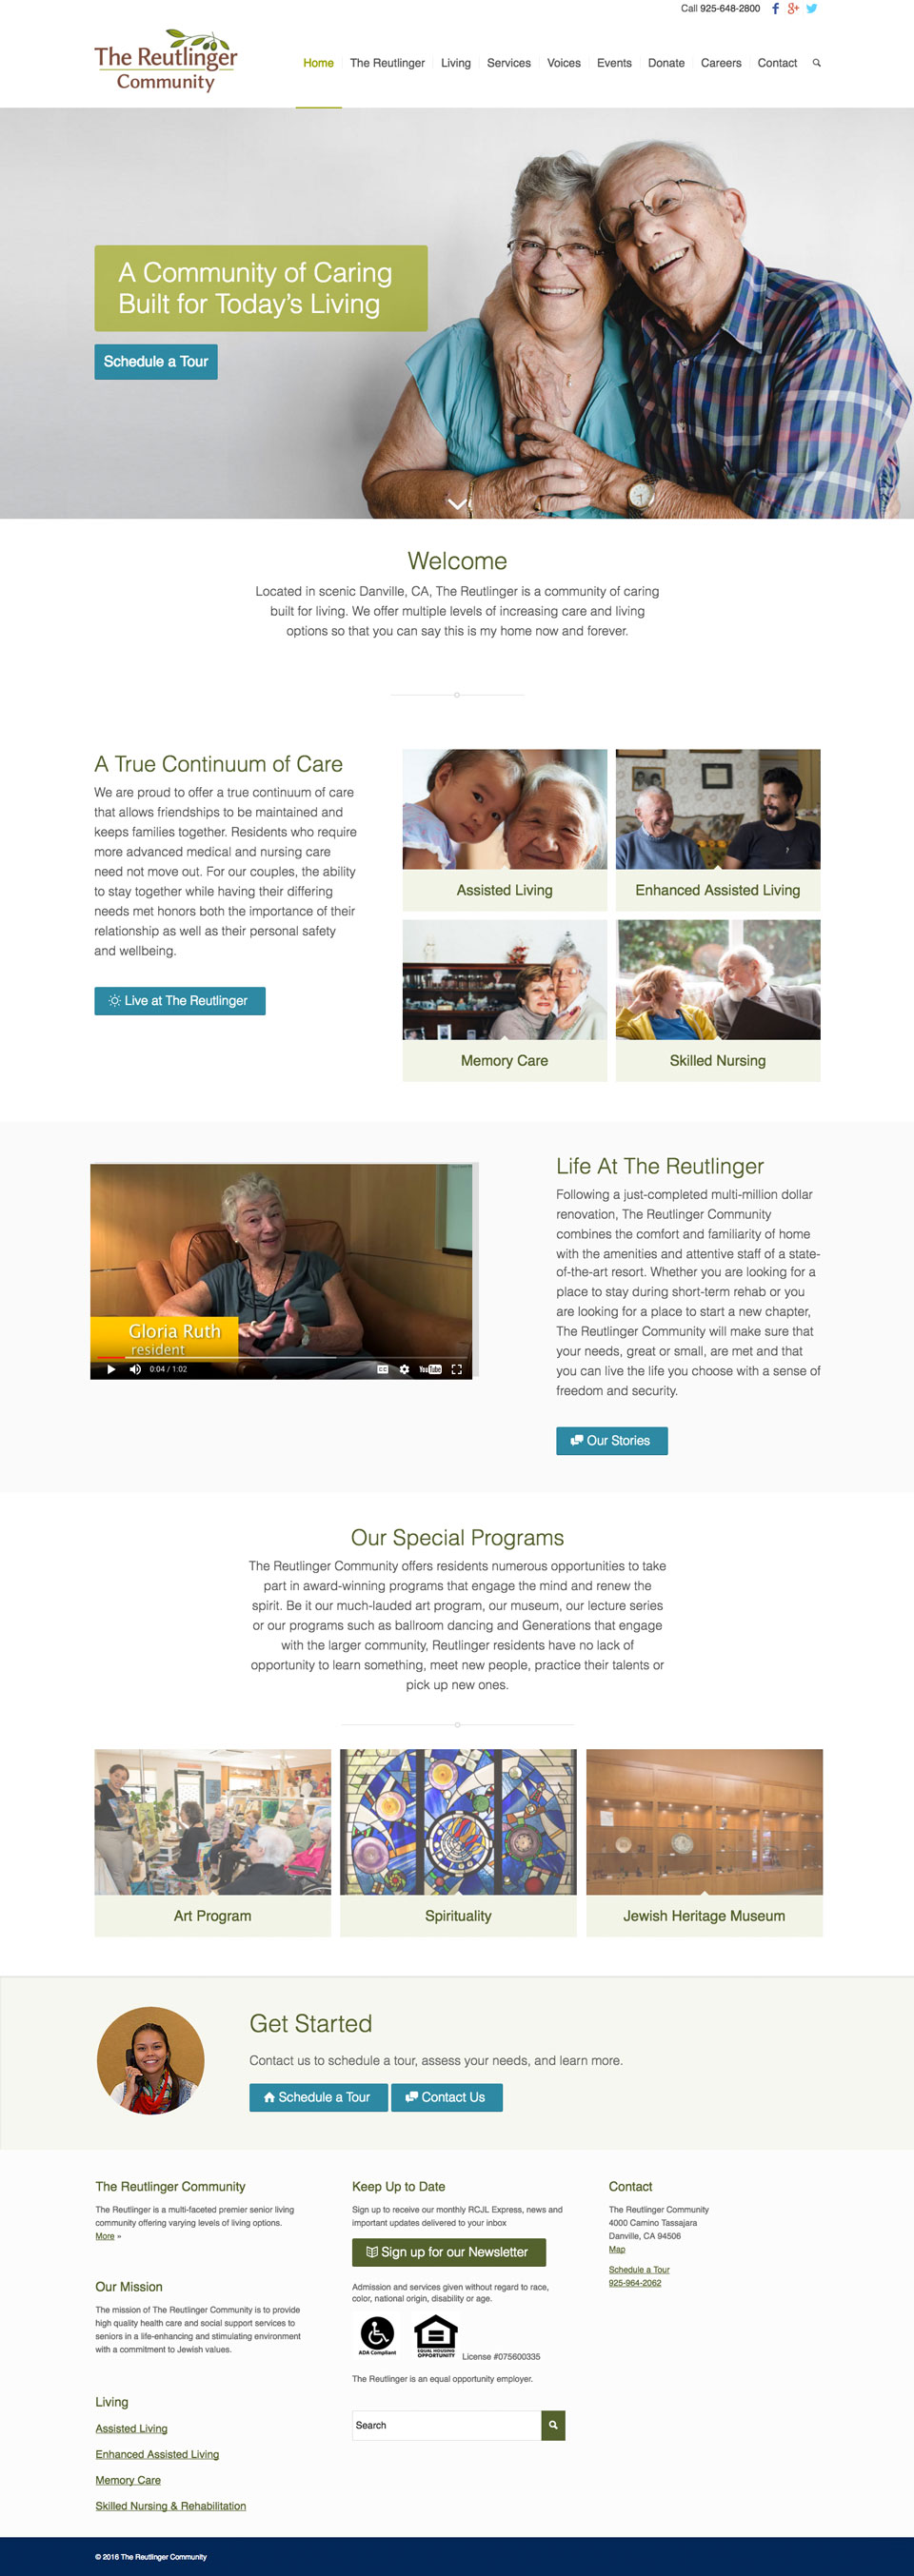 Senior Living Community Website Design: Reutlinger